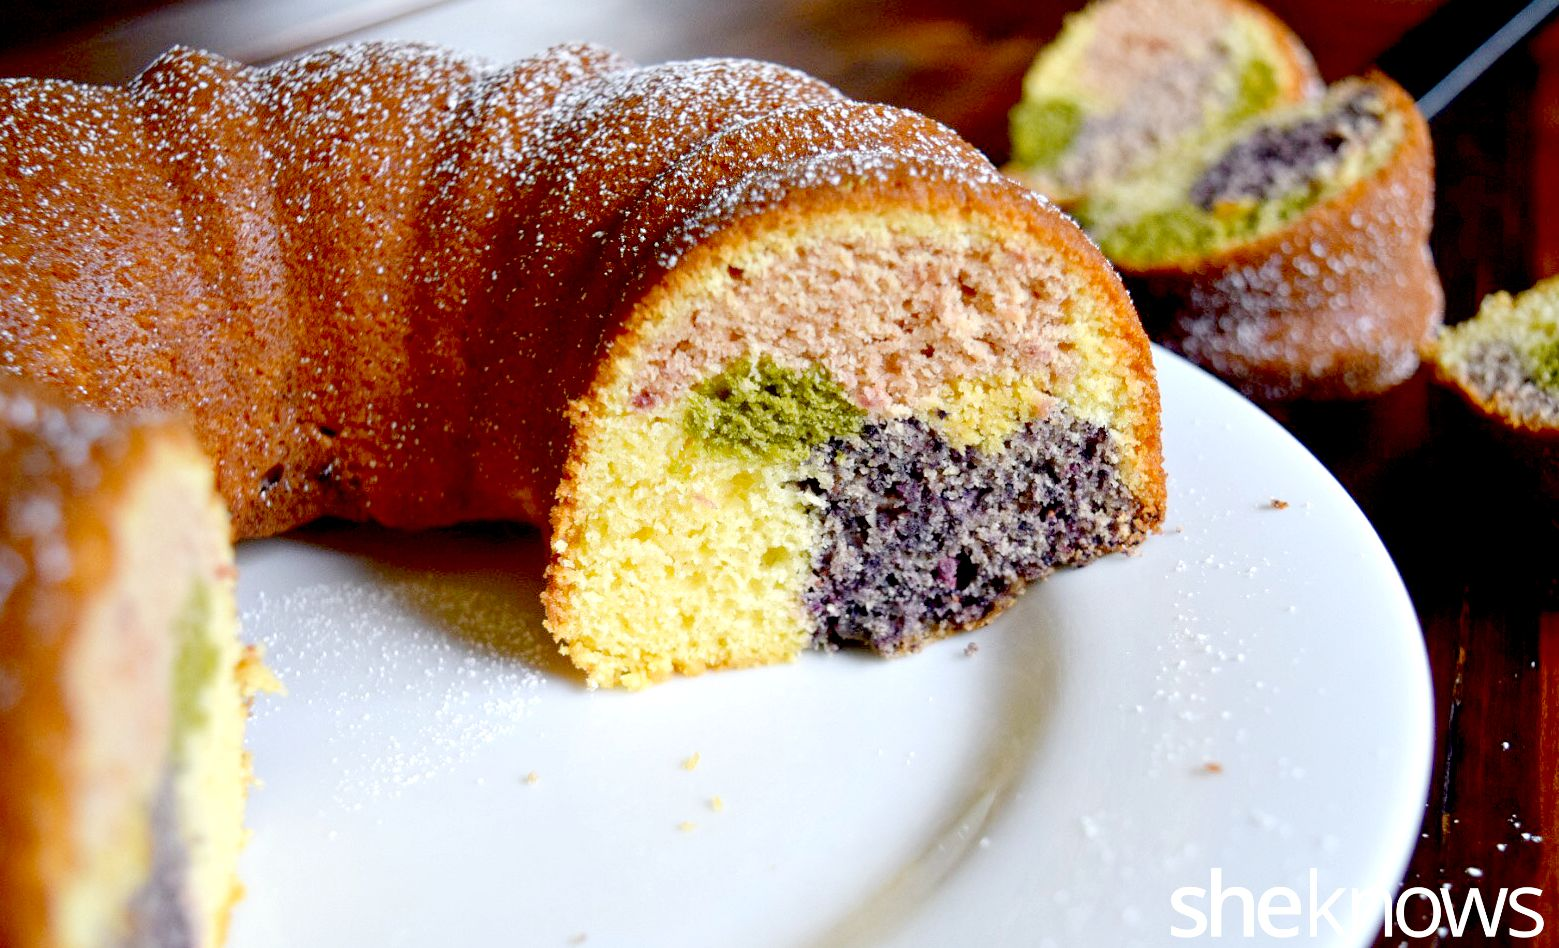 Rainbow bundt cake with natual color